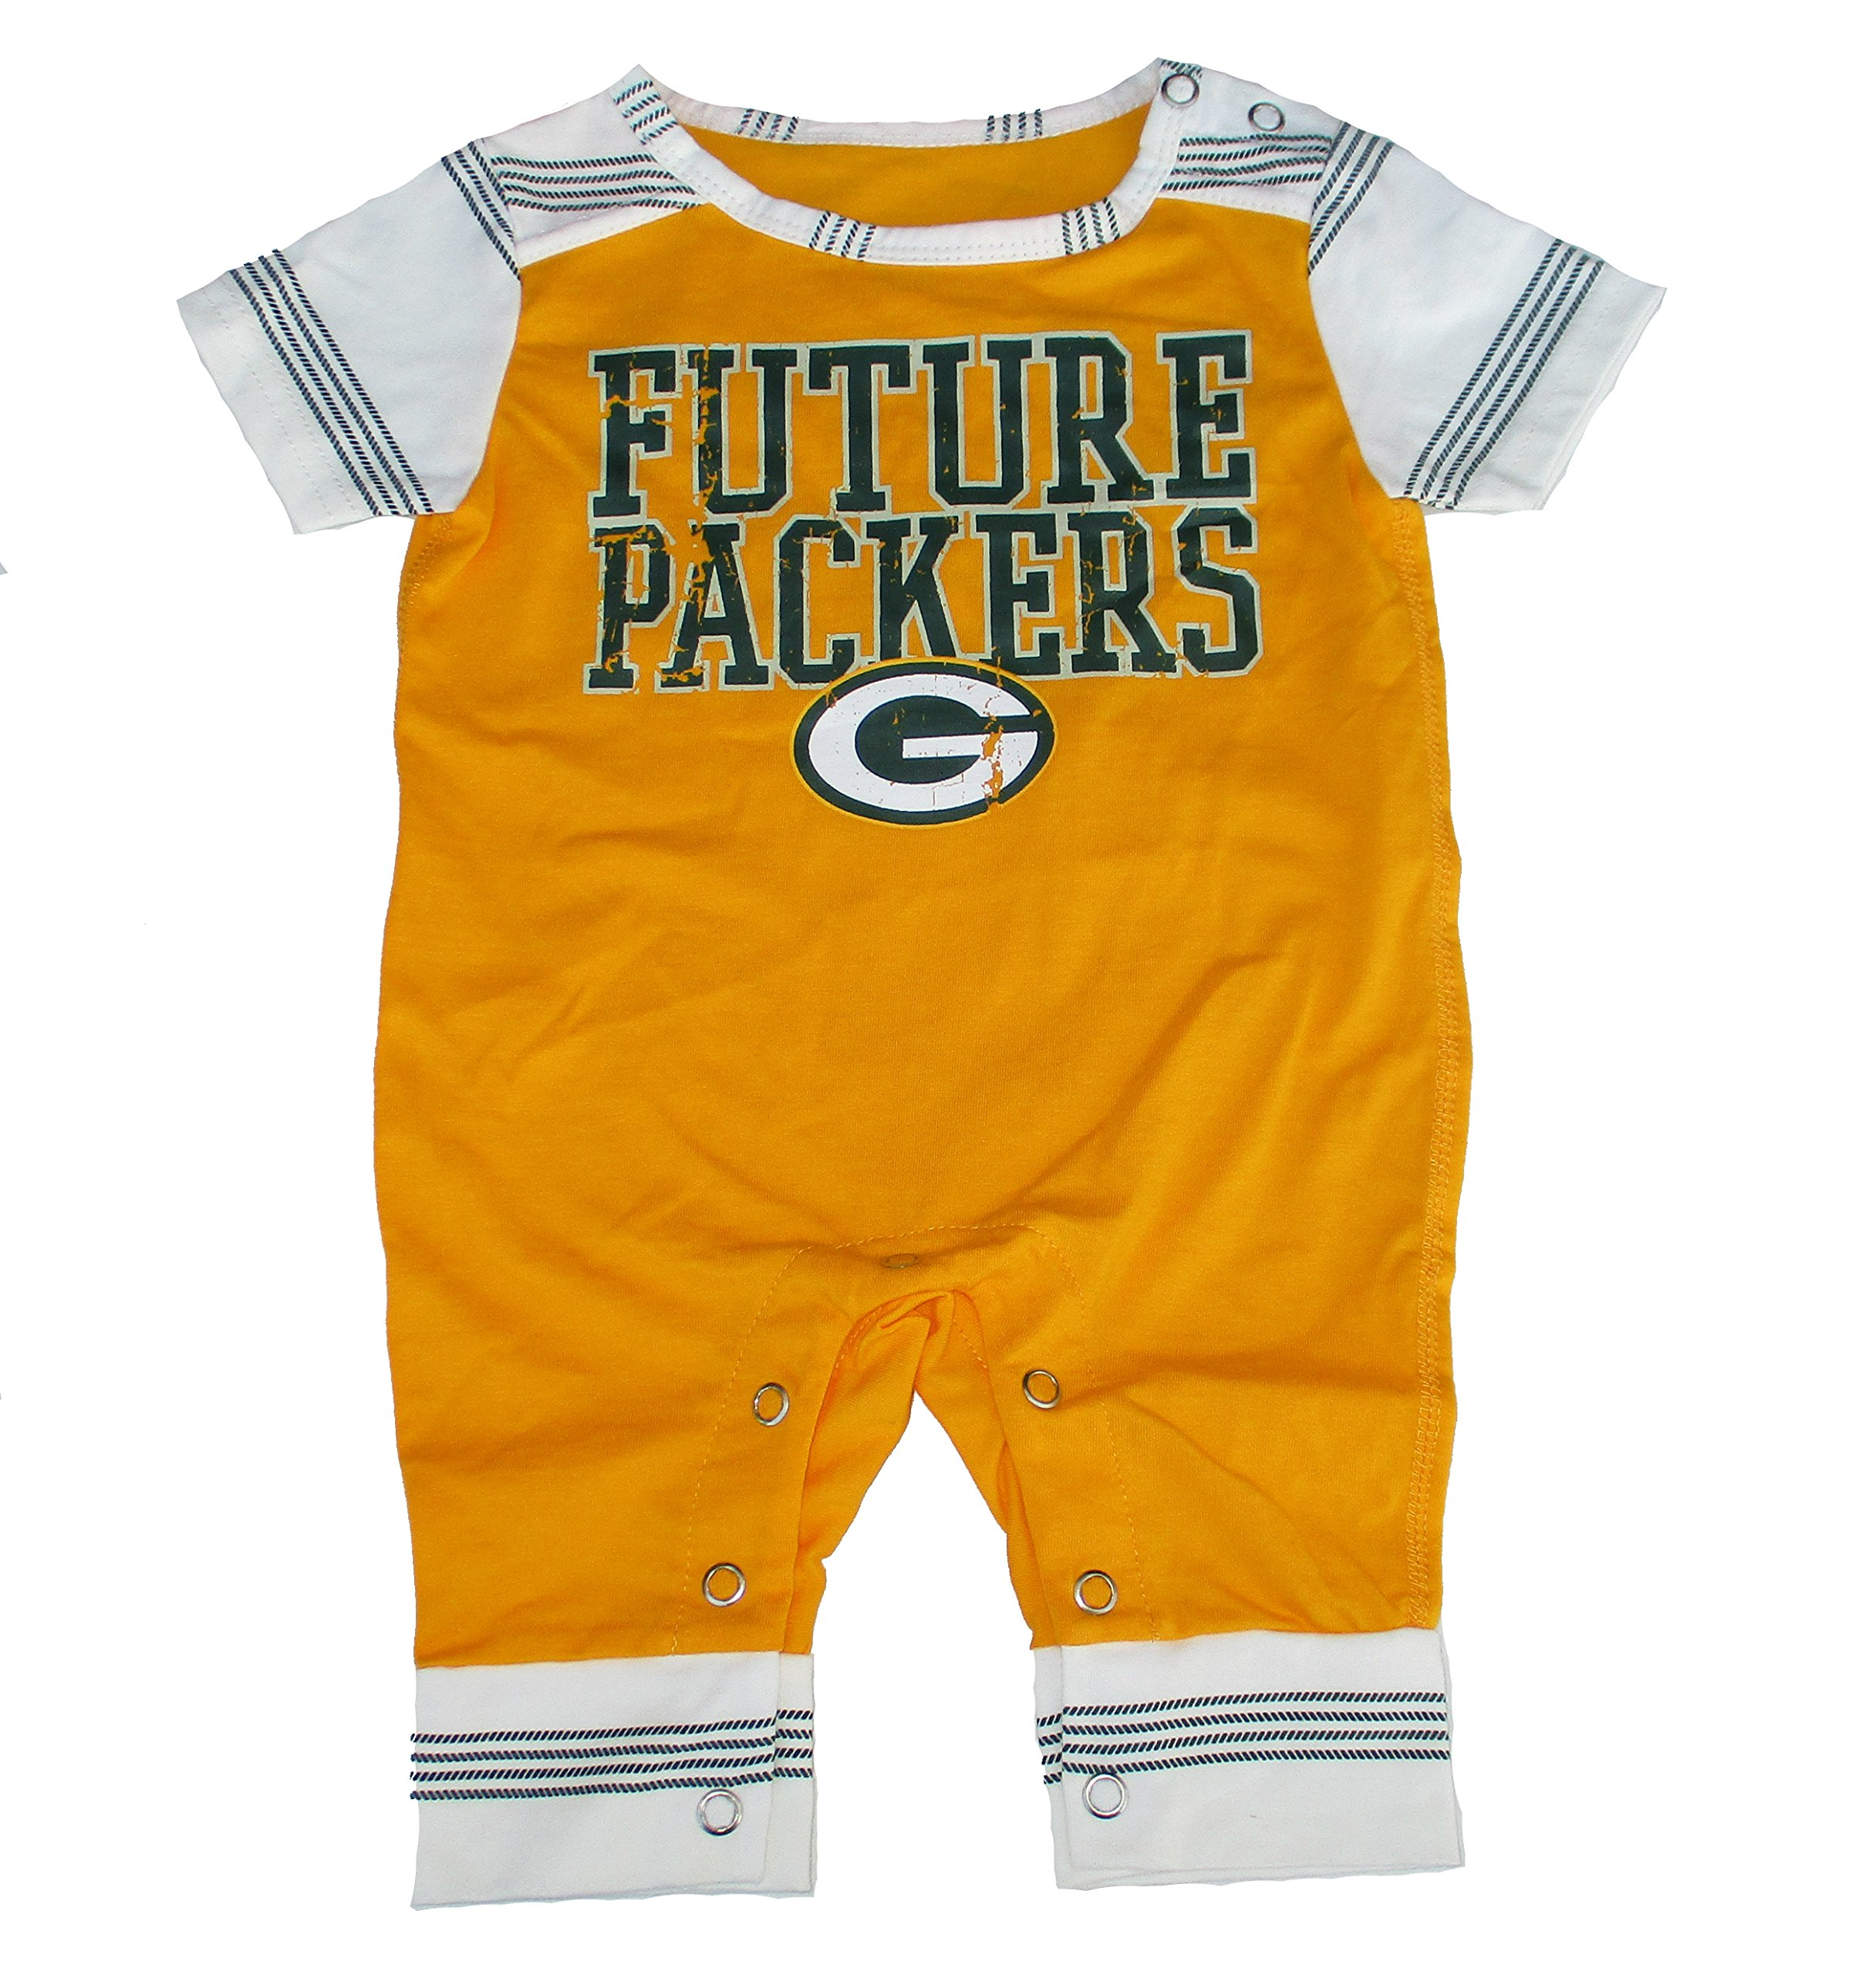 6ab397539e3 Green Bay Packers FUTURE PACKERS Romper Infant Size 0-3 Months   8211